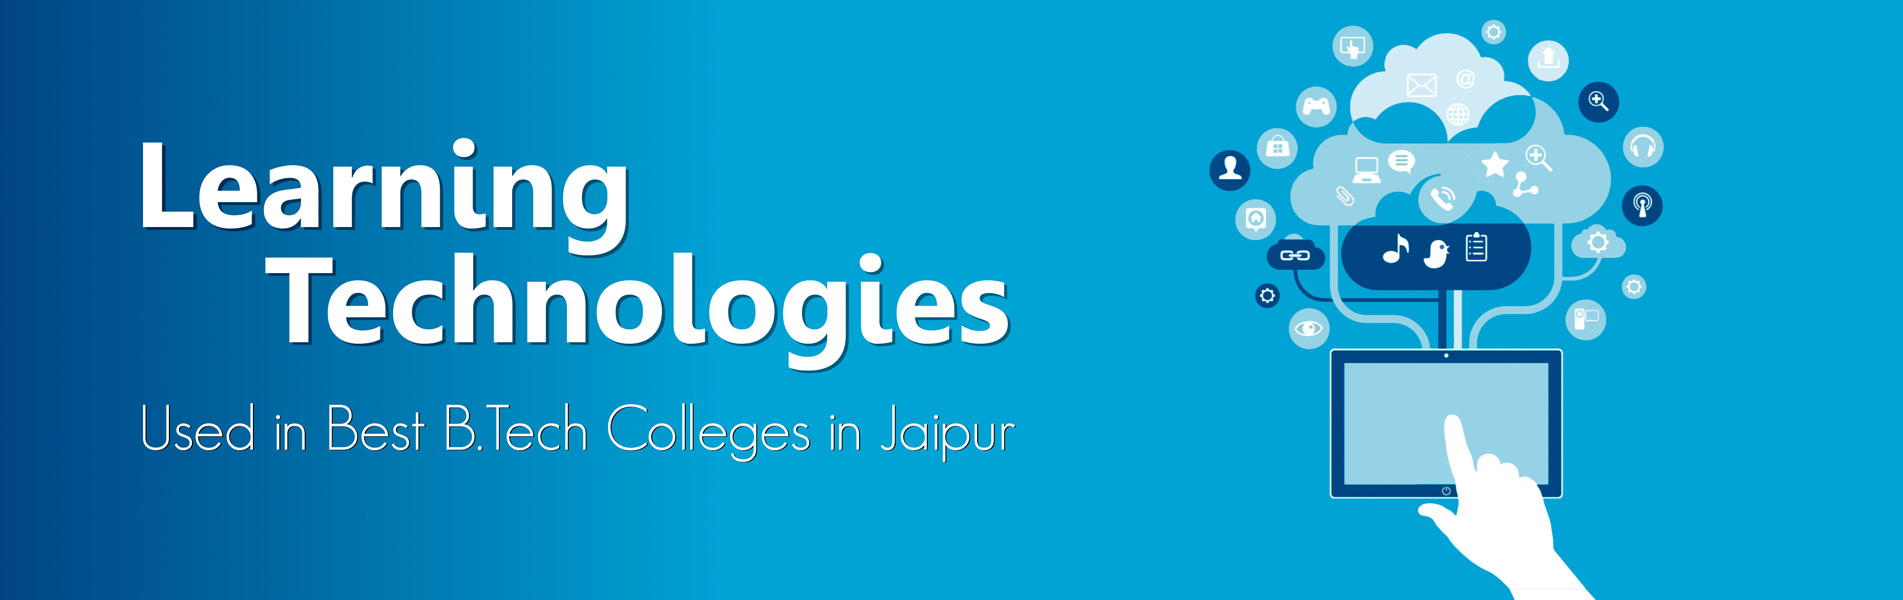 Learning-Technology-Used-in-Best-B-tech-Colleges-in-Jaipur